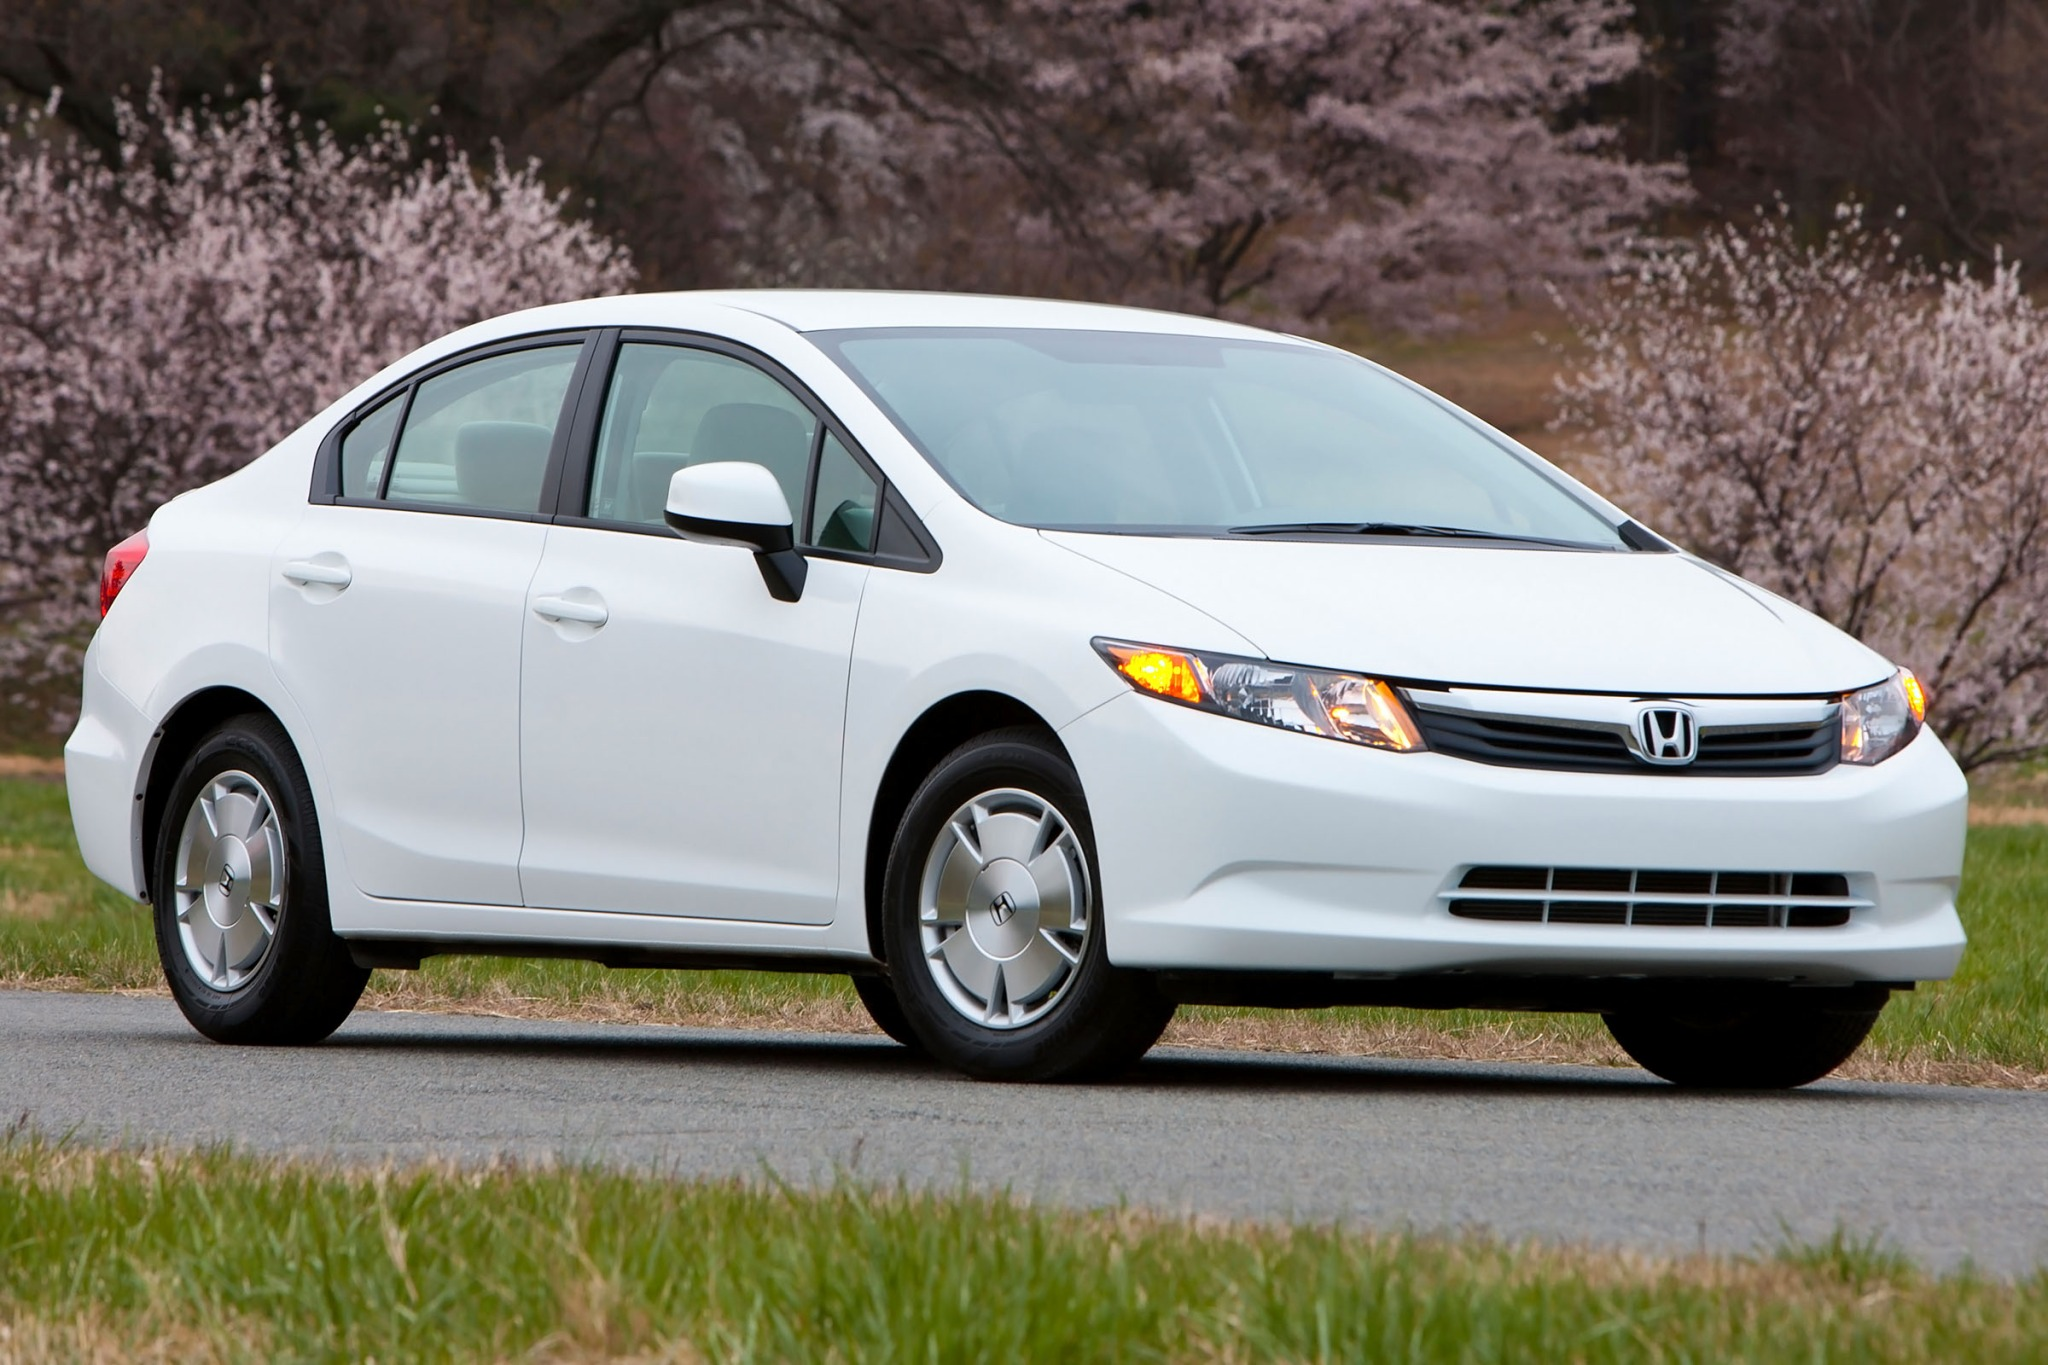 2012 Honda Civic Si Coupe exterior #6